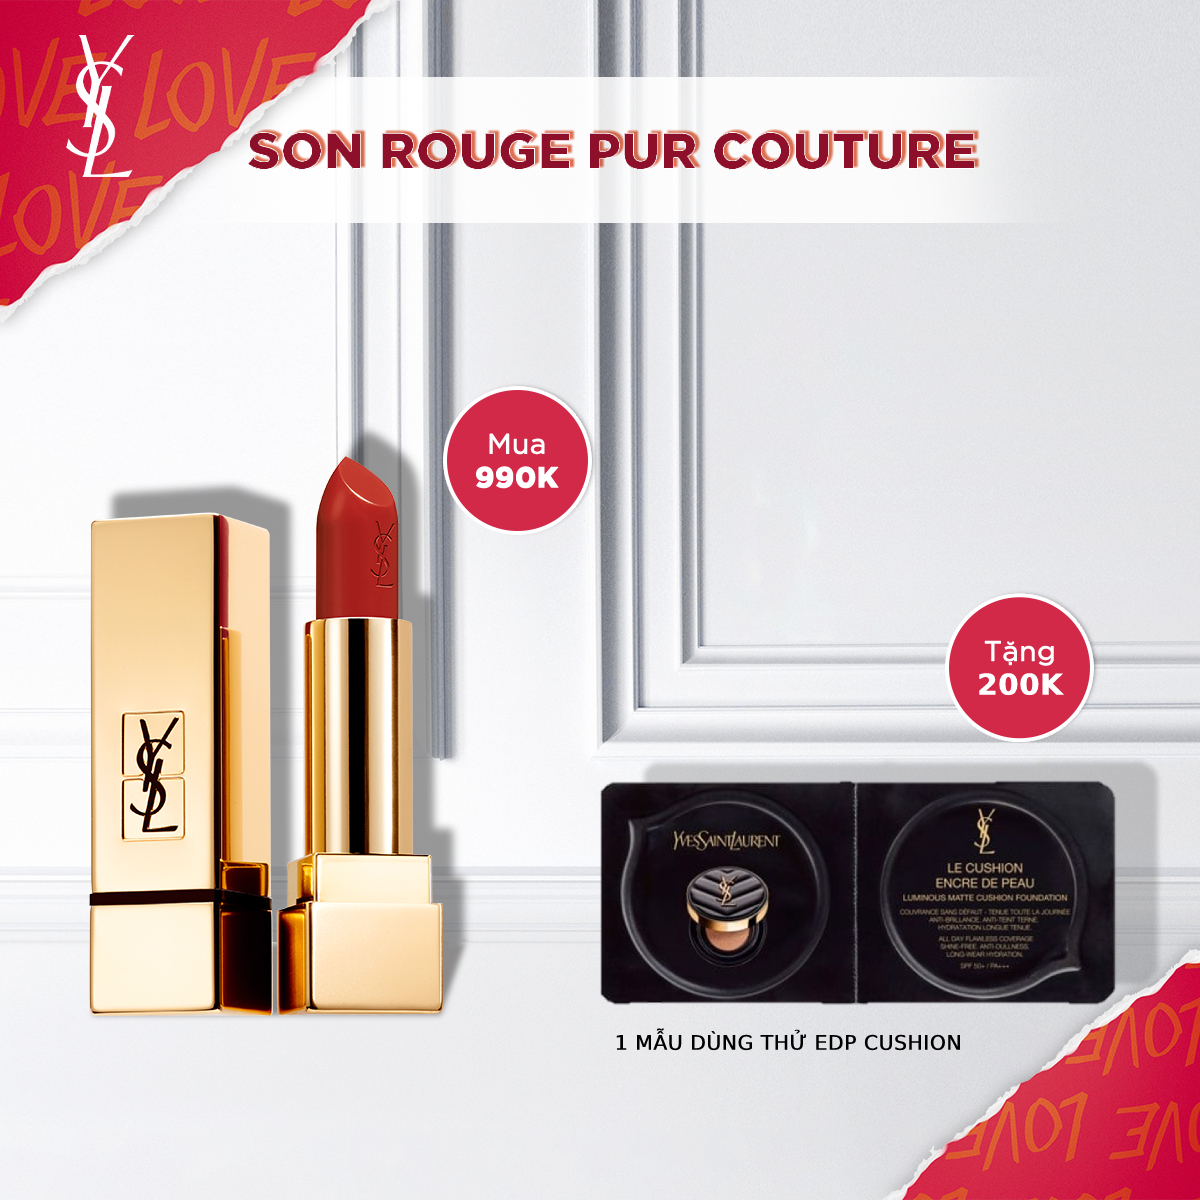 Bộ Son môi Rouge Pur Couture